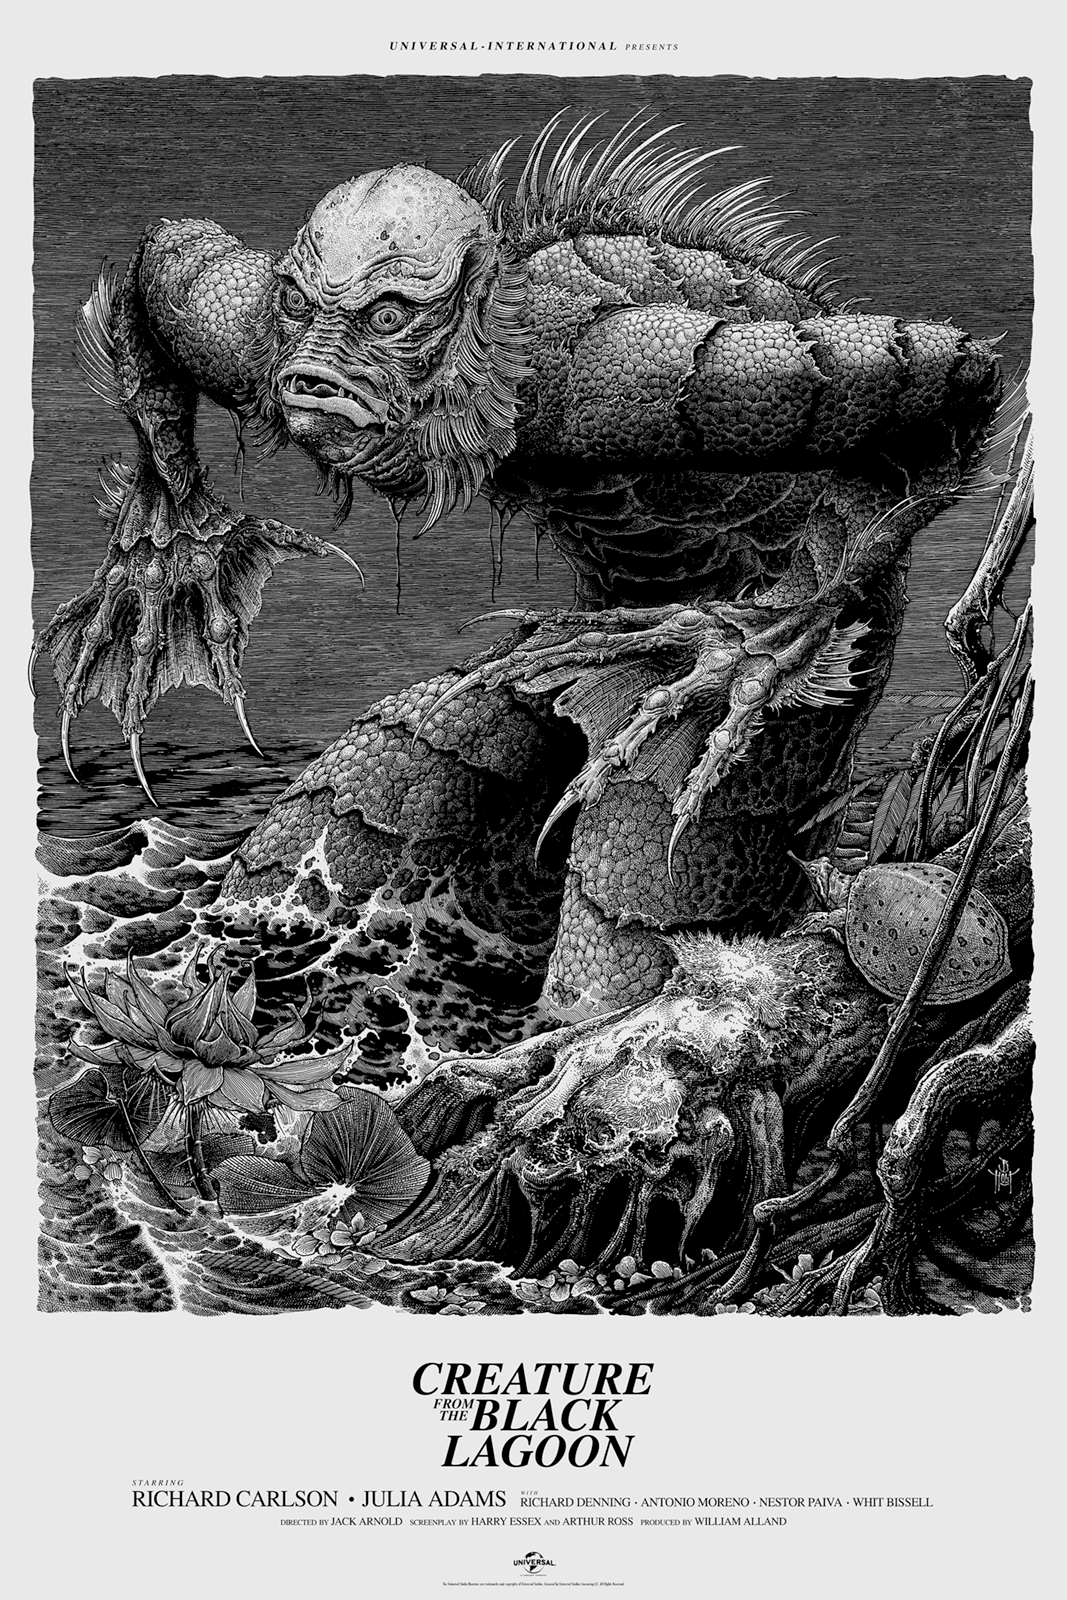 Inside the rock poster frame blog for Creature from the black lagoon coloring pages